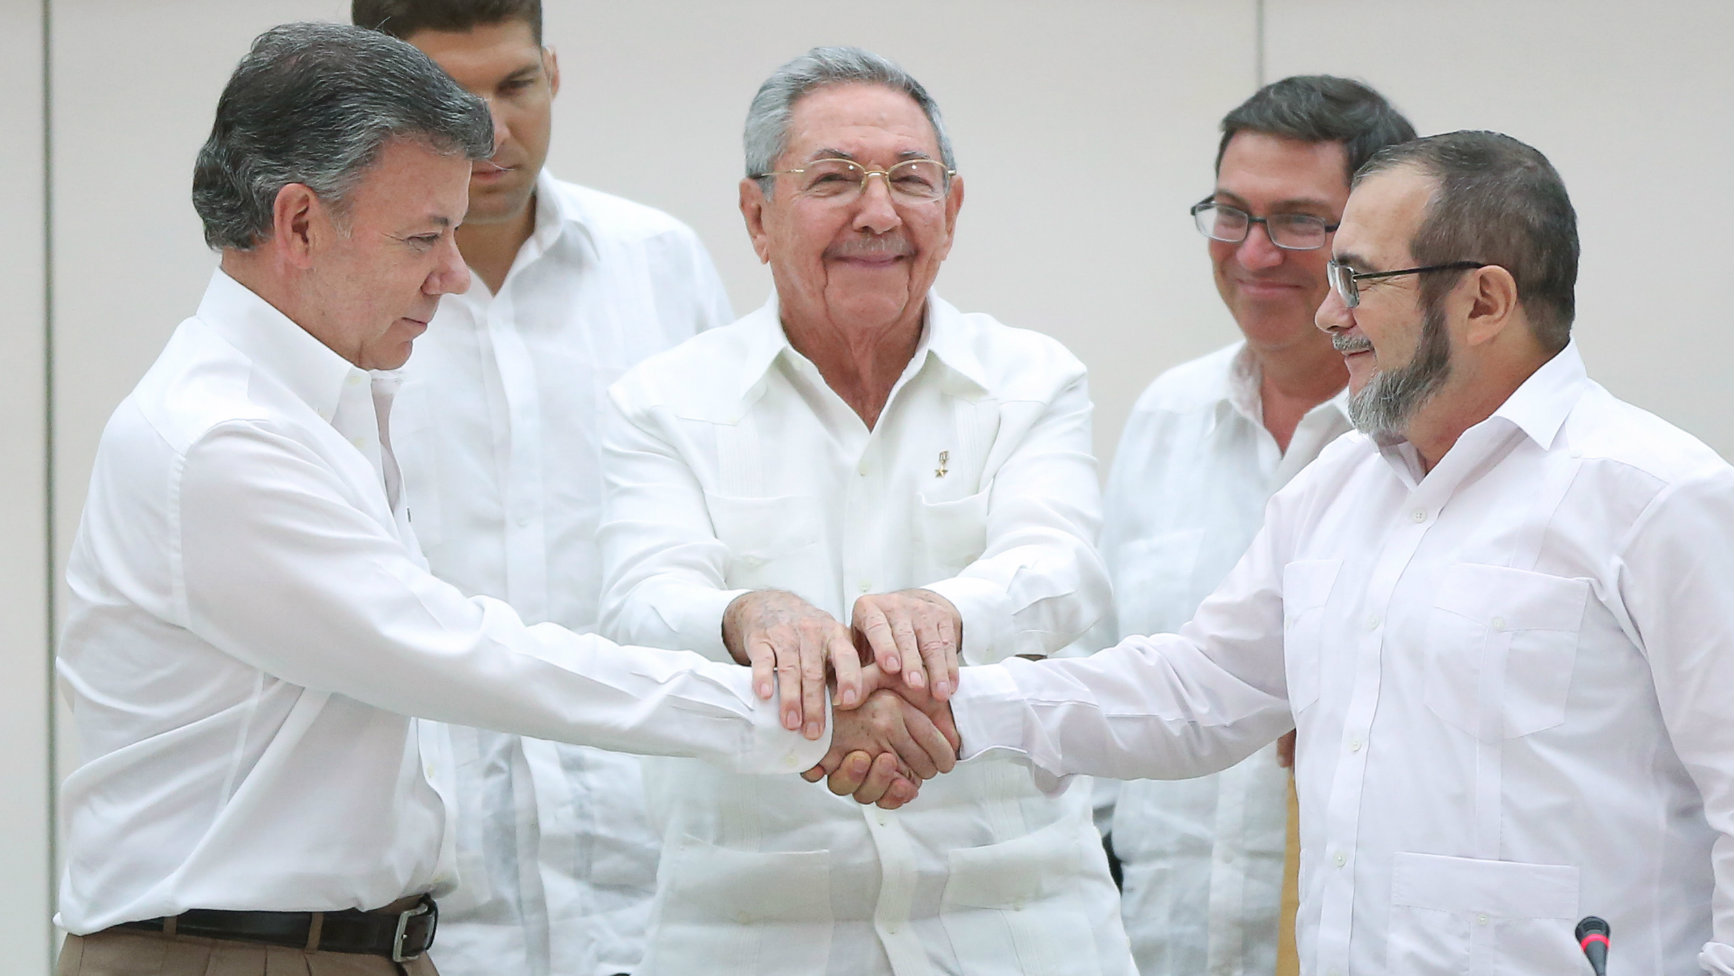 Cuba's President Raul Castro (C) stands as Colombia's President Juan Manuel Santos (L) and FARC rebel leader Rodrigo Londono, better known by the nom de guerre Timochenko, shake hands at peace talks in Havana, September 23, 2015.